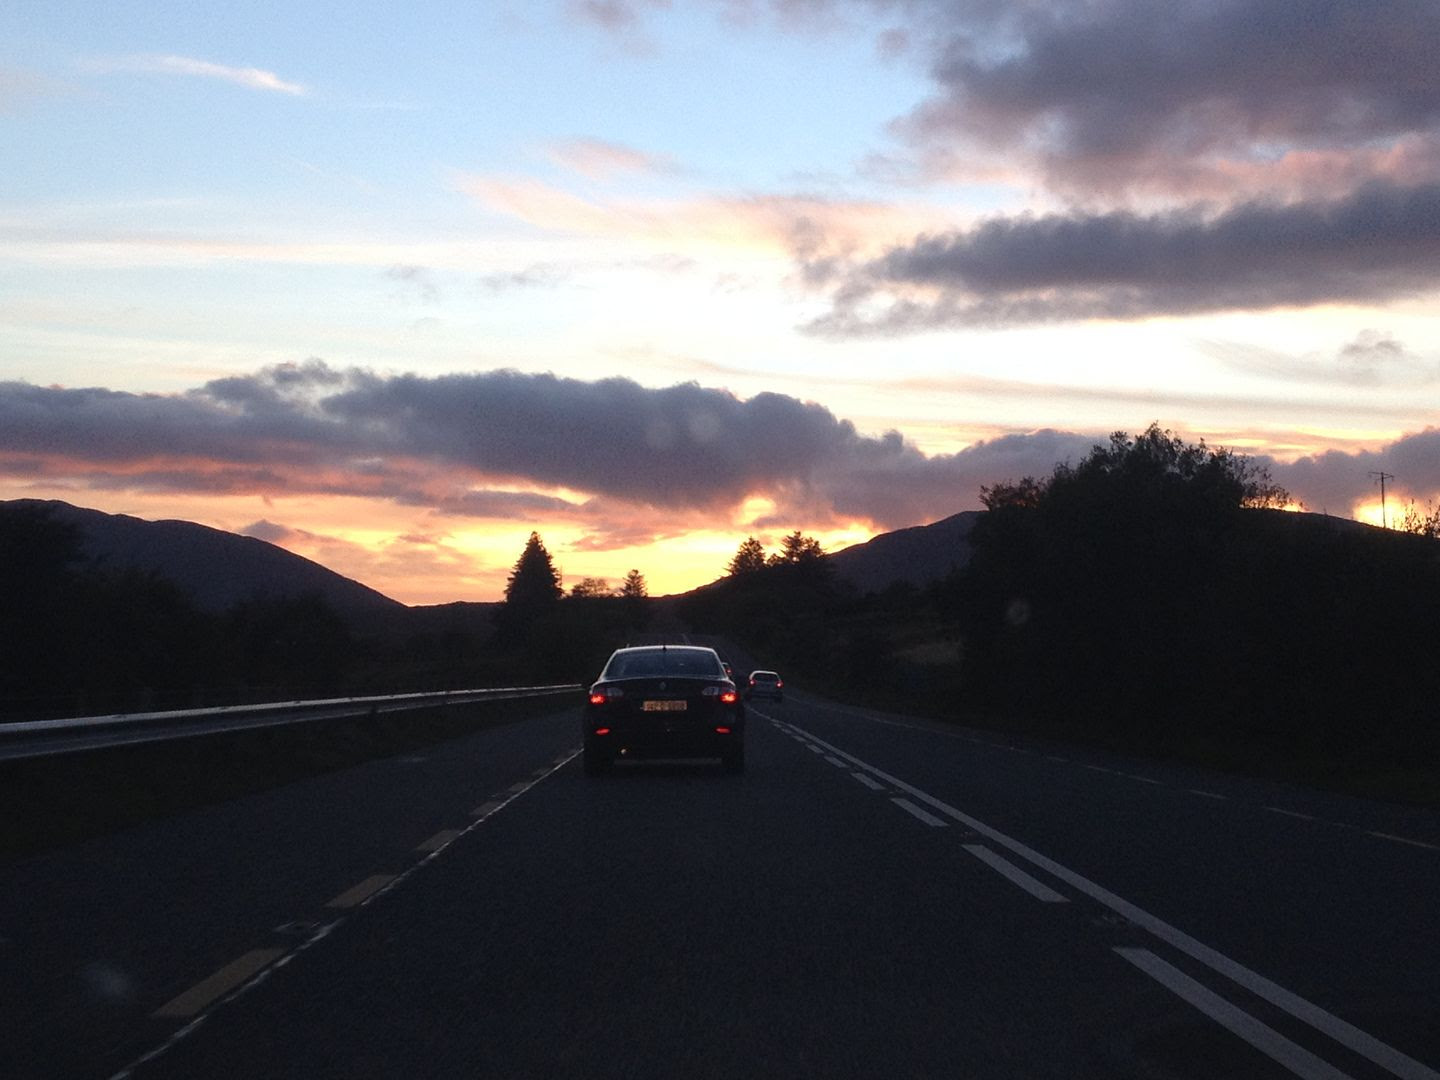 Drive from Londonderry/Derry, Northern Ireland to Ballinrobe, Ireland photo 2015-10-12 18.37.39_zpsq3n6uuvu.jpg